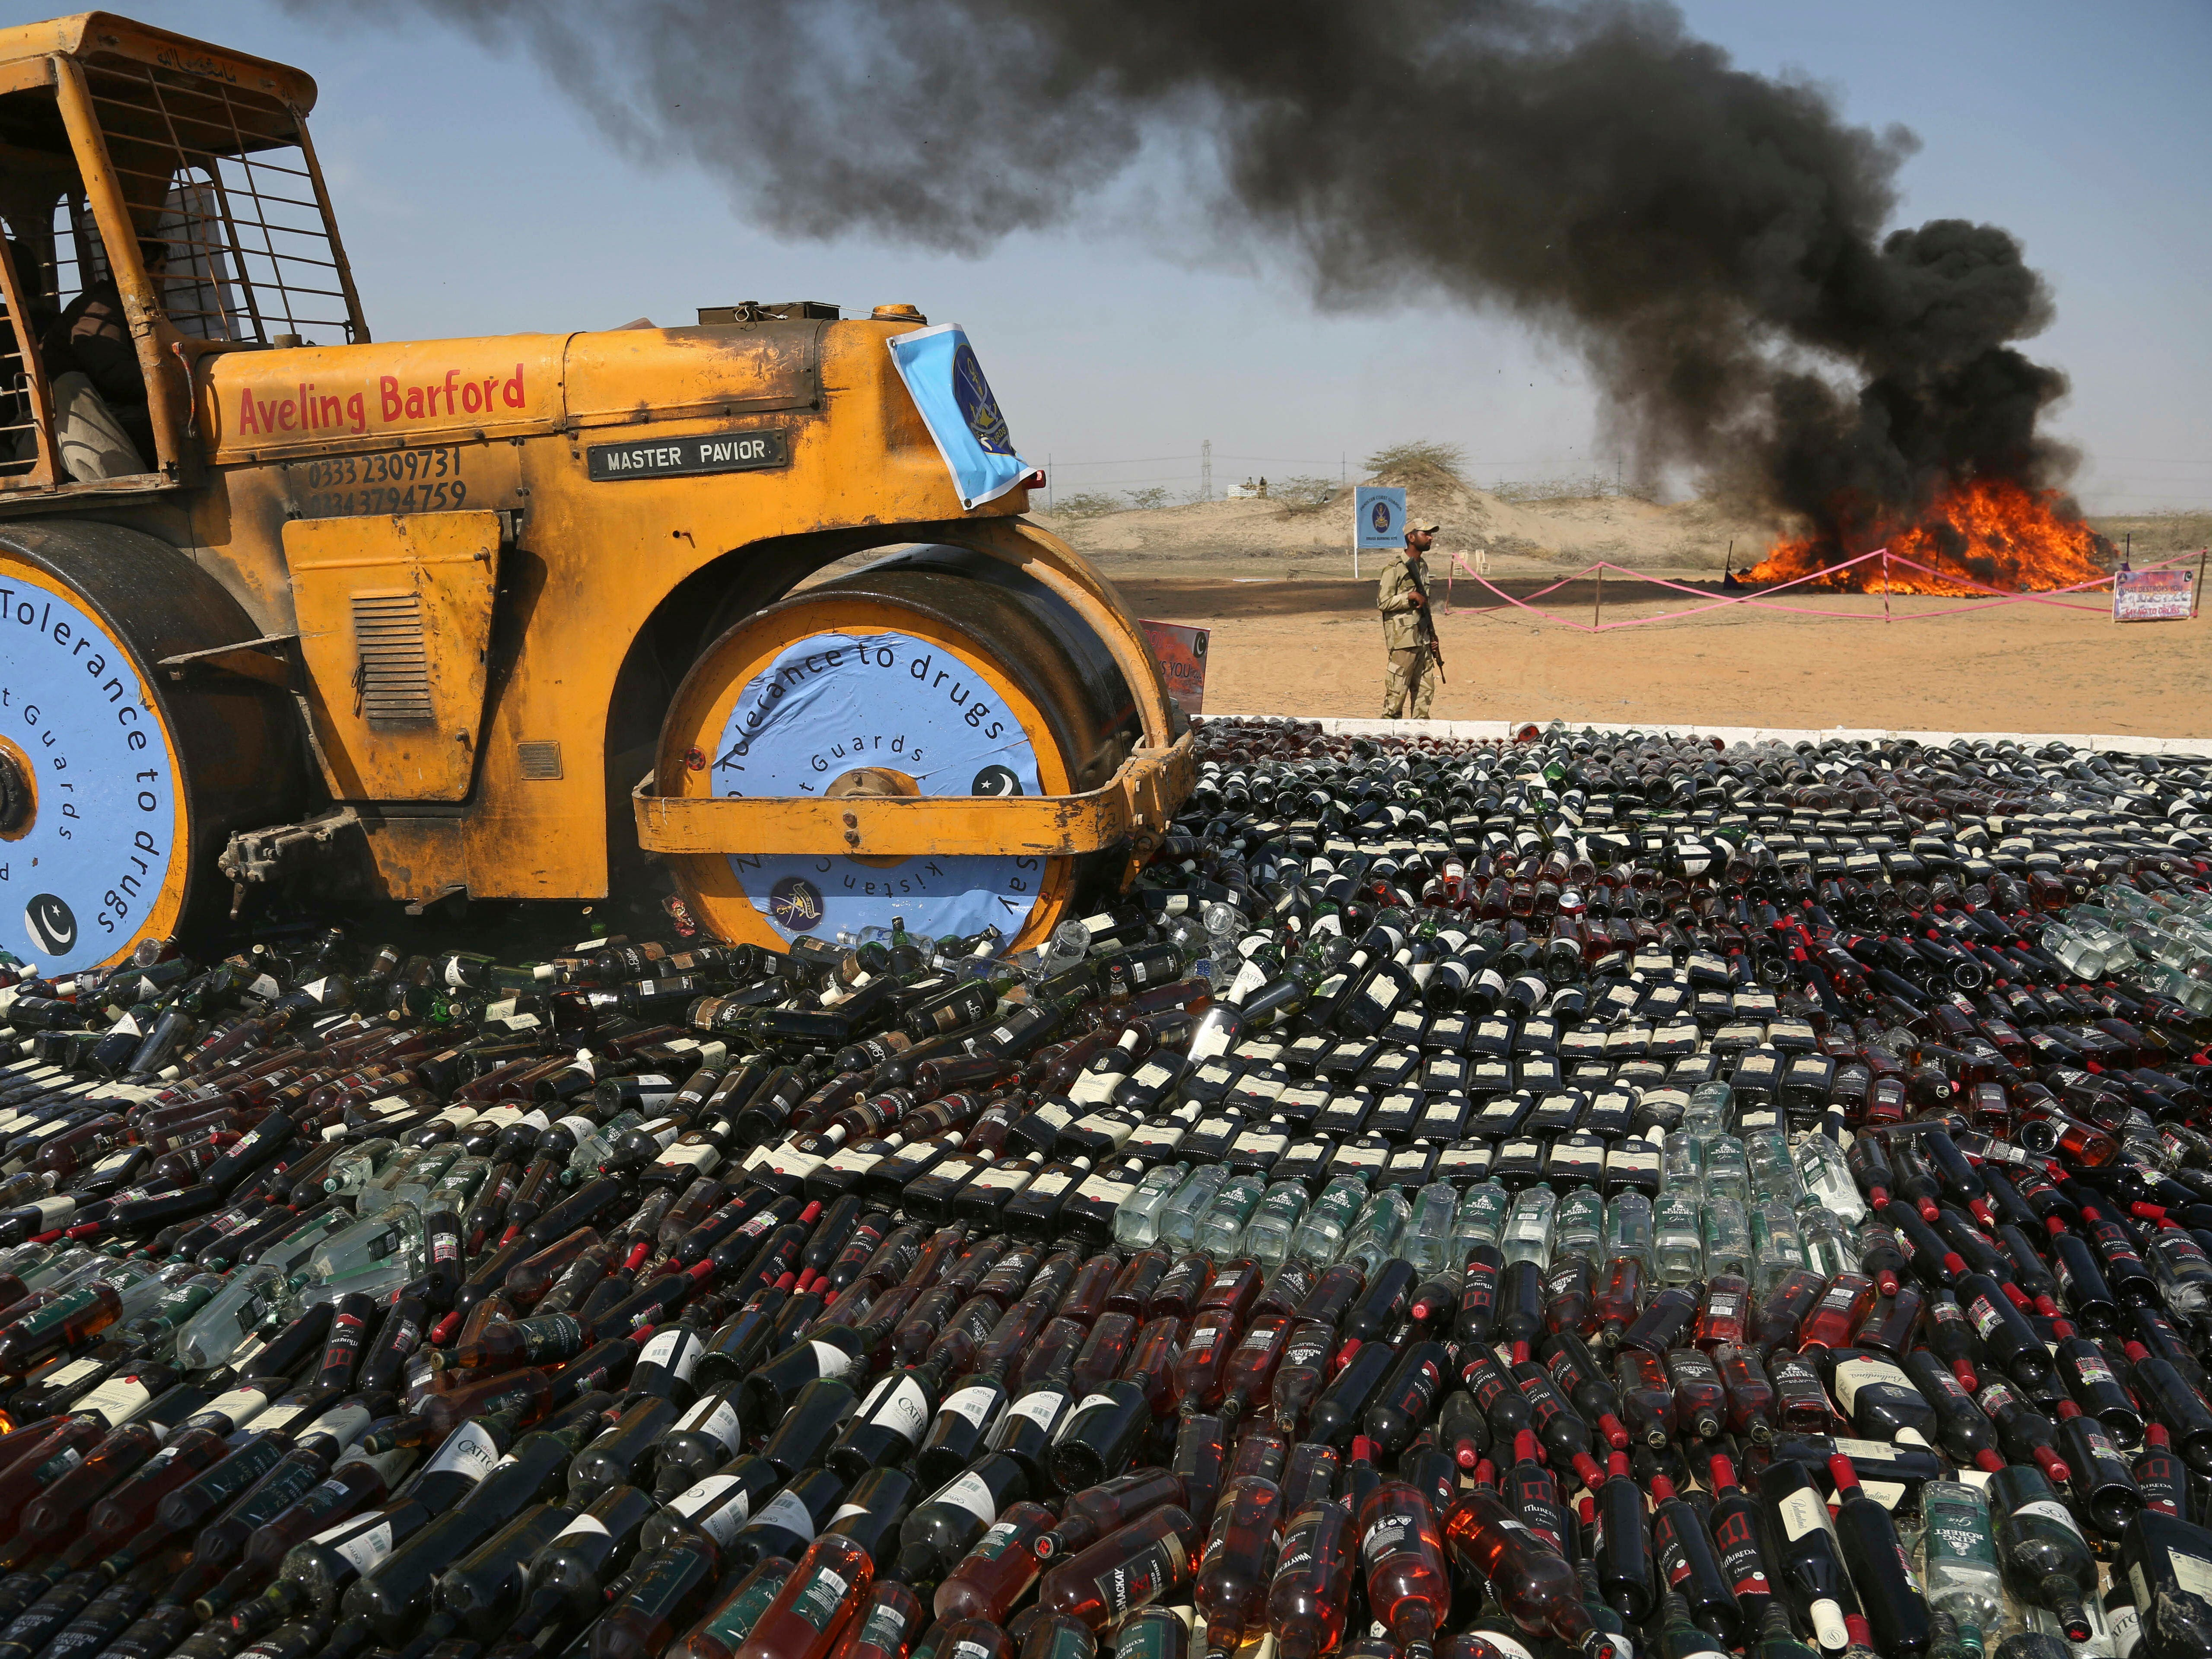 Pakistani authorities smash confiscated bottles of alcohol and burn drugs in Karachi on Monday, Feb. 11, 2019. The Pakistani Anti-Narcotic Force is taking strict measures to stop drug trafficking from neighboring Afghanistan and Pakistani tribal areas.